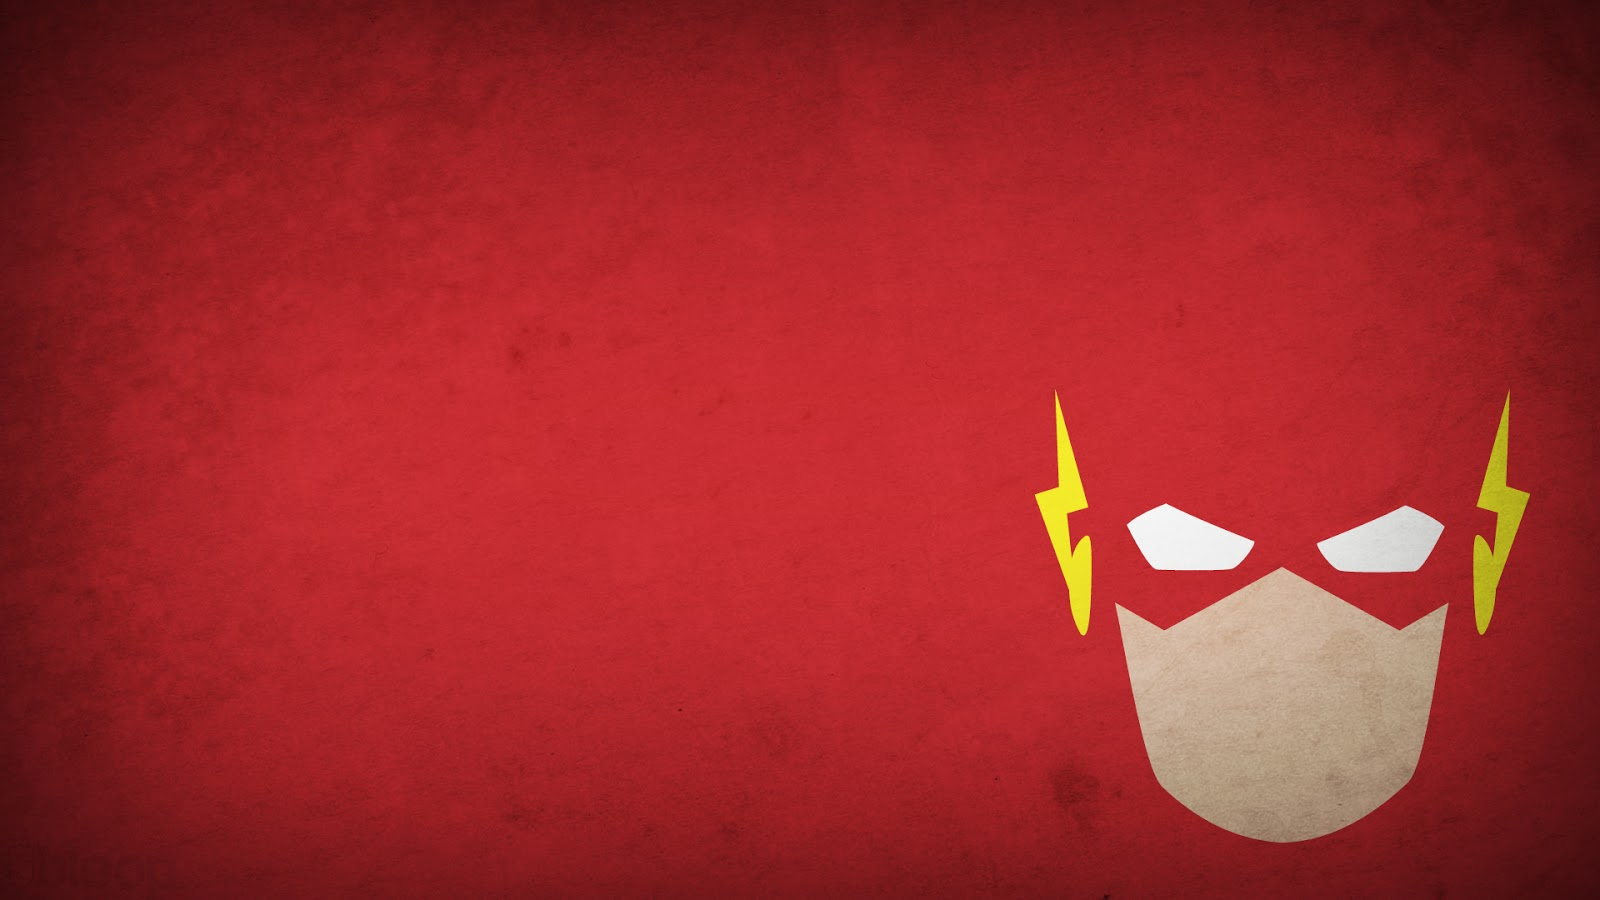 Wallpapers Minimalist Heroes Pack HD 1080p Central Photoshop 1600x900